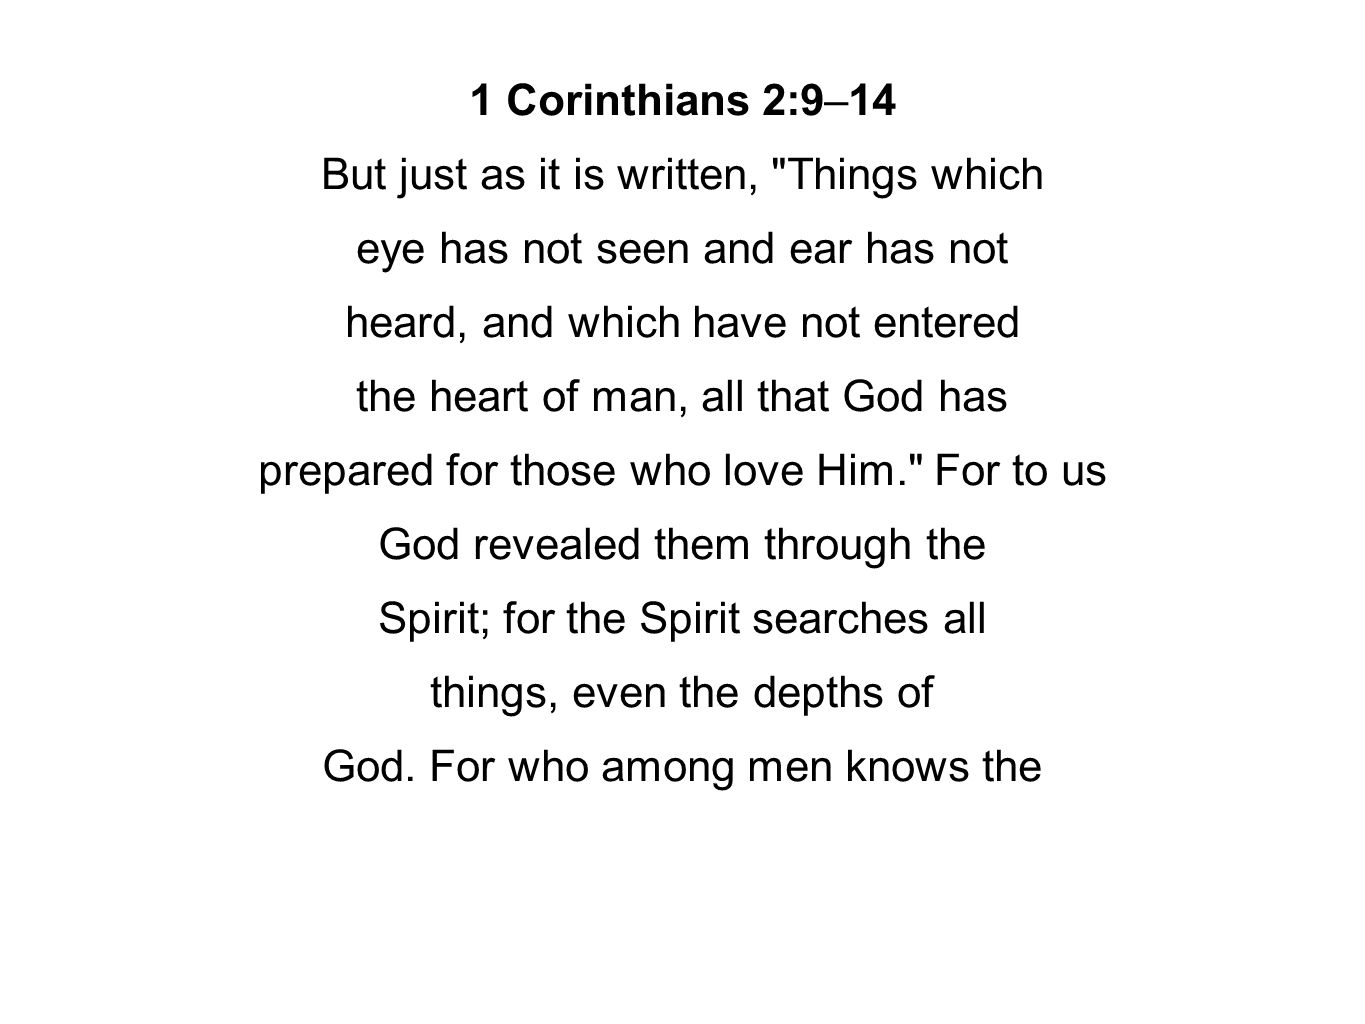 1 Corinthians 2:9–14 But just as it is written, Things which eye has not seen and ear has not heard, and which have not entered the heart of man, all that God has prepared for those who love Him. For to us God revealed them through the Spirit; for the Spirit searches all things, even the depths of God.